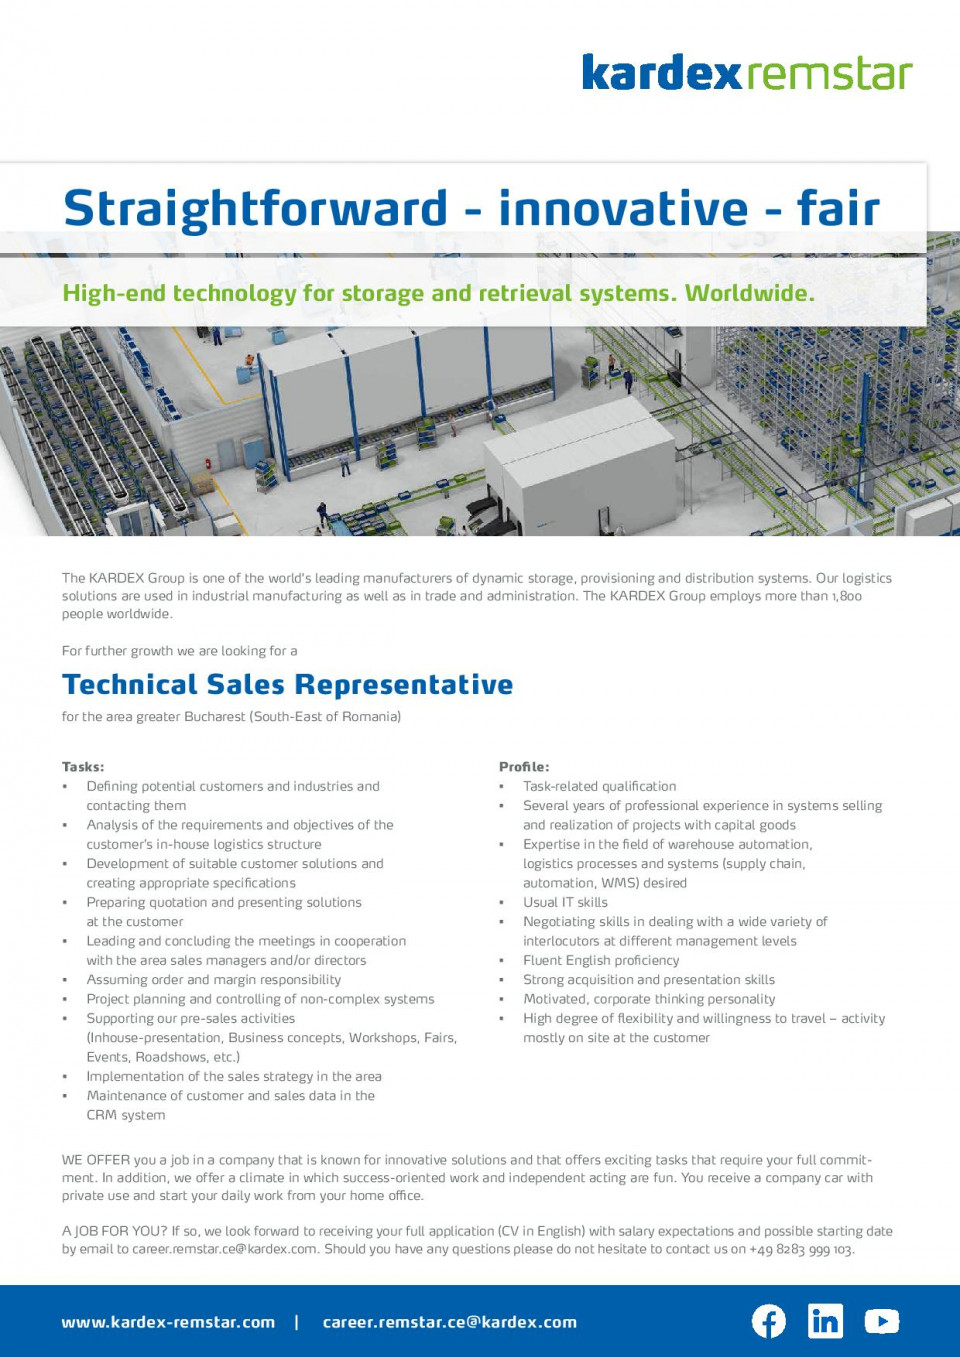 The KARDEX Group is one of the world's leading manufacturers of dynamic storage, provisioning and distribution systems. Our logistics solutions are used in industrial manufacturing as well as in trade and administration. The KARDEX Group employs more than 1,800 people worldwide. For further growth we are looking for a Technical Sales Representative for the area greater Bucharest (South-East of Romania) WE OFFER you a job in a company that is known for innovative solutions and that offers exciting tasks that require your full commitment. In addition, we offer a climate in which success-oriented work and independent acting are fun. You receive a company car with private use and start your daily work from your home office. A JOB FOR YOU? If so, we look forward to receiving your full application (CV in English) with salary expectations and possible starting date by email to career.remstar.ce@kardex.com. Should you have any questions please do not hesitate to contact us on +49 8283 999 103. Tasks: • Defining potential customers and industries and contacting them • Analysis of the requirements and objectives of the customer's in-house logistics structure • Development of suitable customer solutions and creating appropriate specifications • Preparing quotation and presenting solutions at the customer • Leading and concluding the meetings in cooperation with the area sales managers and/or directors • Assuming order and margin responsibility • Project planning and controlling of non-complex systems • Supporting our pre-sales activities (Inhouse-presentation, Business concepts, Workshops, Fairs, Events, Roadshows, etc.) • Implementation of the sales strategy in the area • Maintenance of customer and sales data in the CRM system Profile: • Task-related qualification • Several years of professional experience in systems selling and realization of projects with capital goods • Expertise in the field of warehouse automation, logistics processes and systems (supply chain, automati